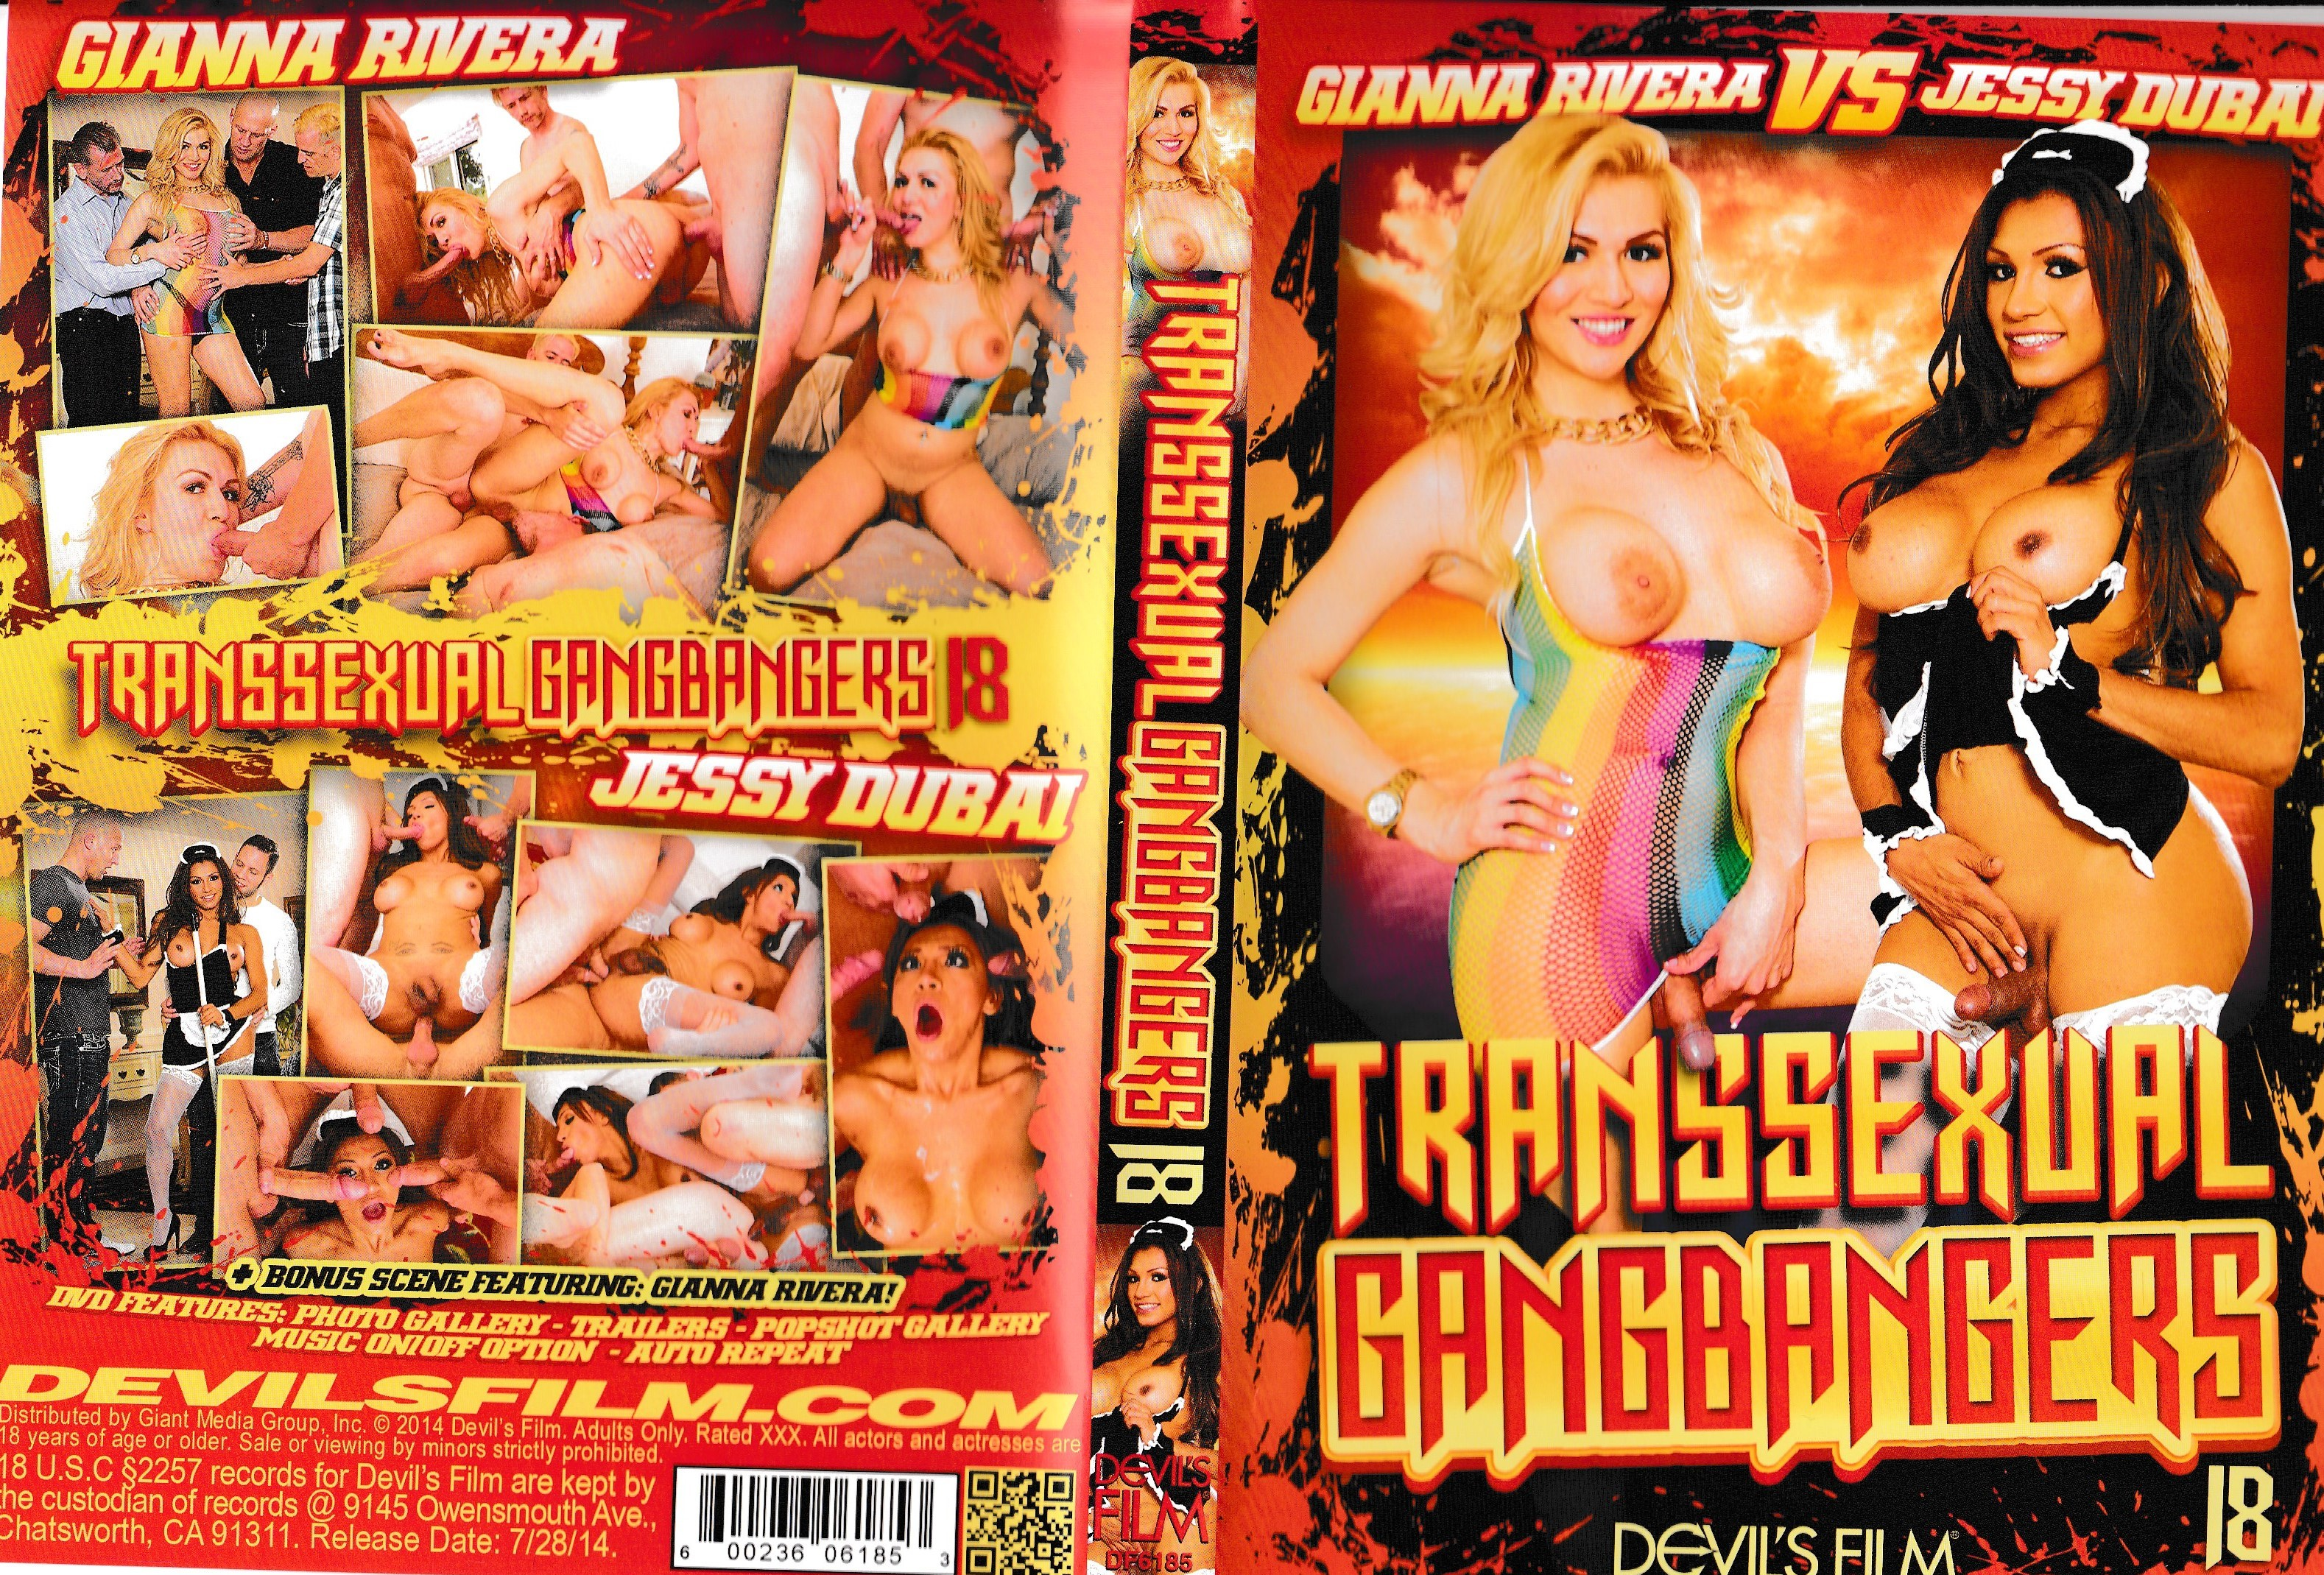 Ch 121:  Transsexual Gangbanger 18